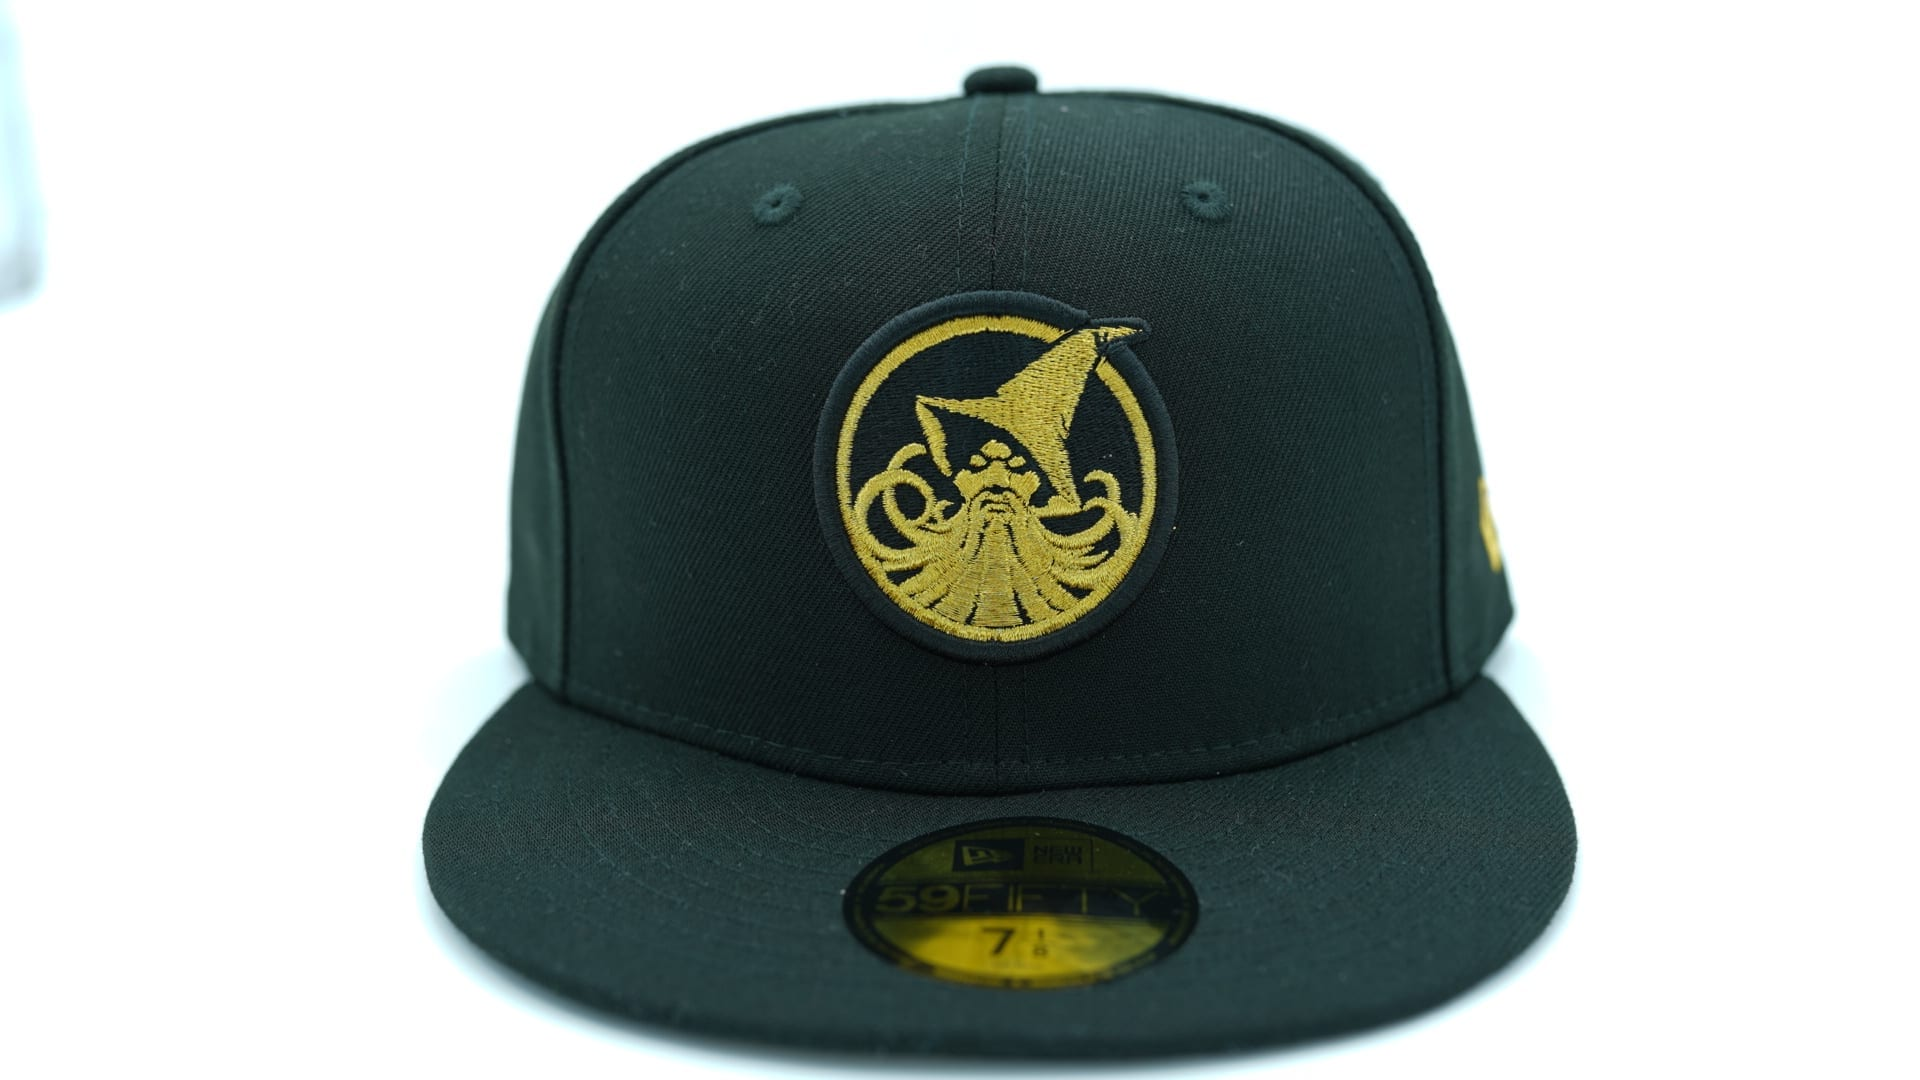 974f95c05859ff San Jose Sharks Metallic High Crown Fitted Cap by MITCHELL & NESS x NHL